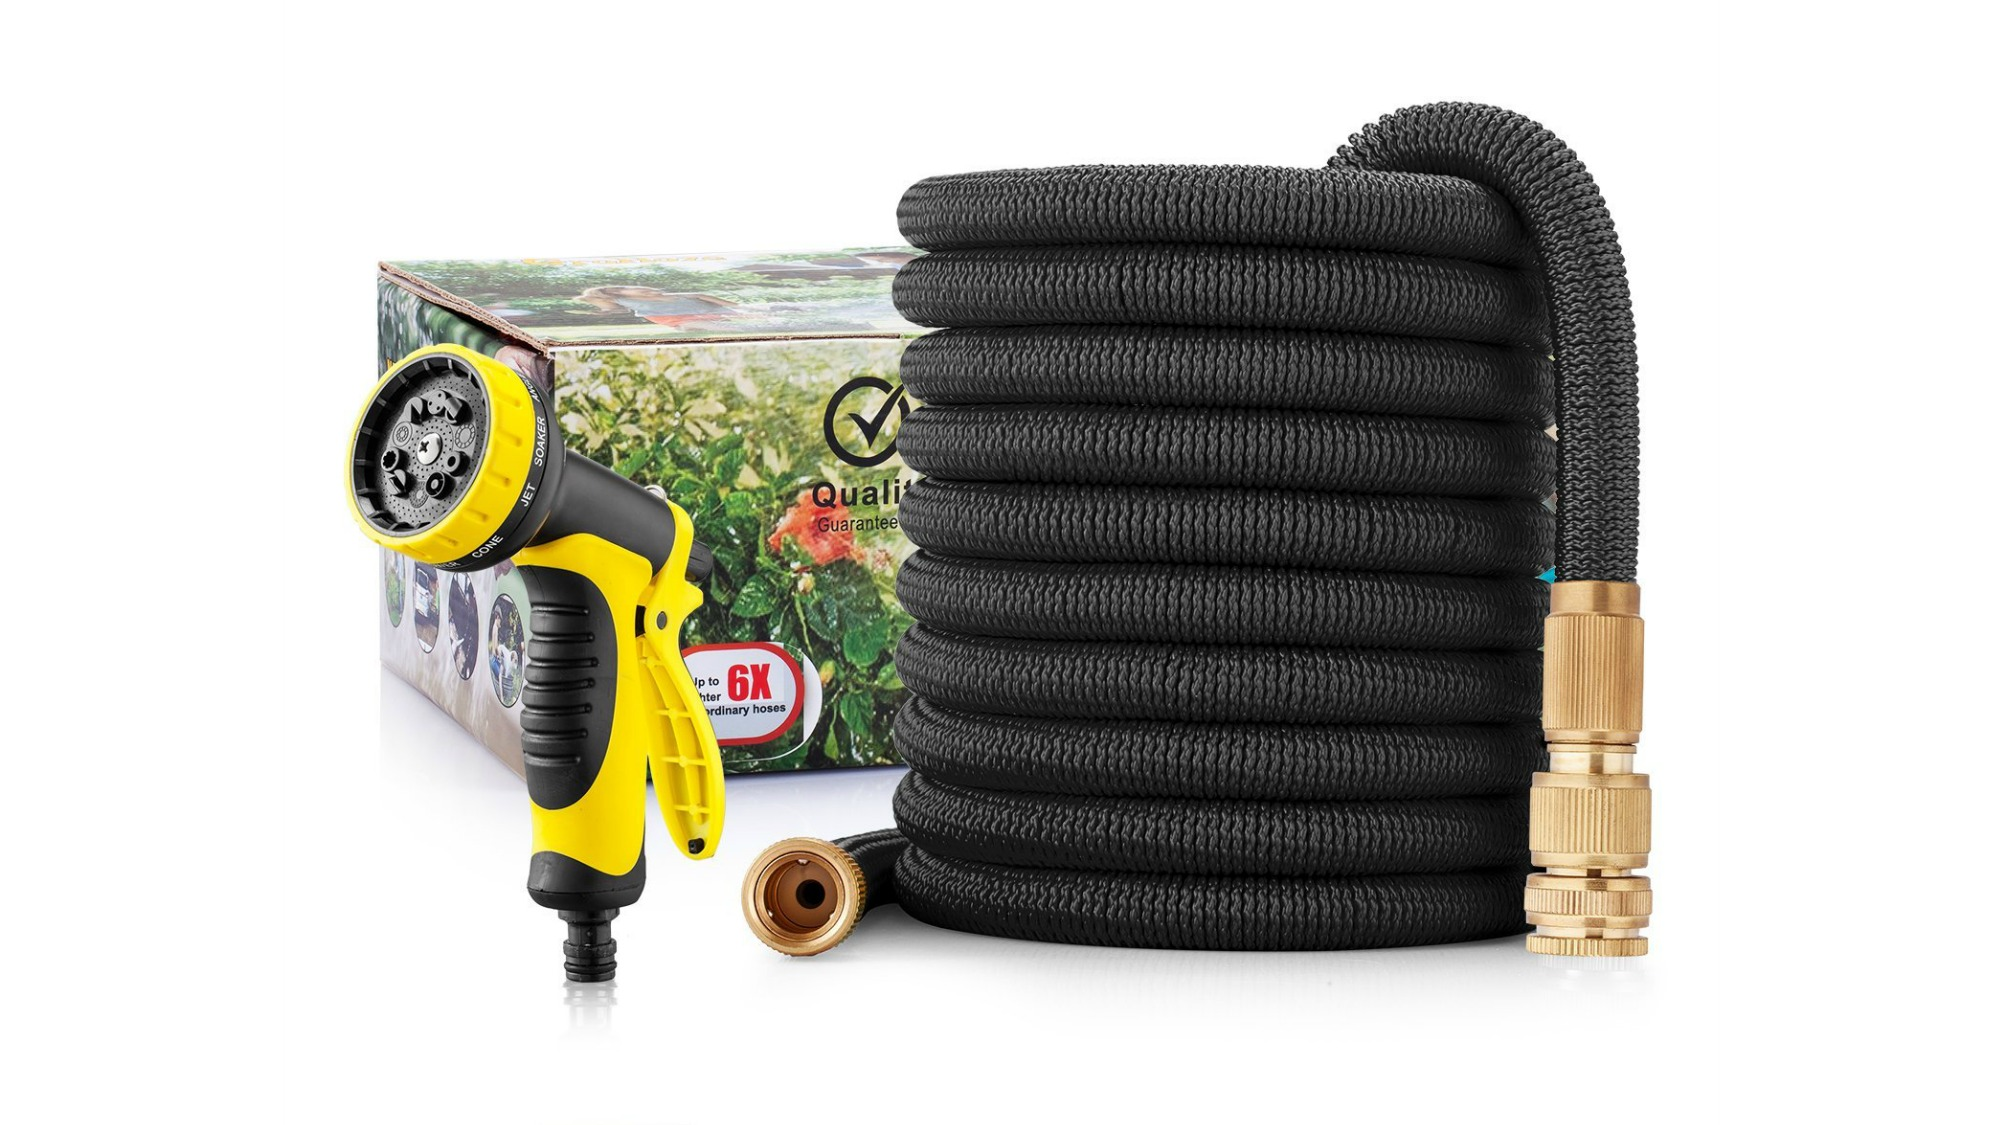 Uncategorized Cool Hoses best garden hose the hoses to buy from a12 expert grohoze expandable hose